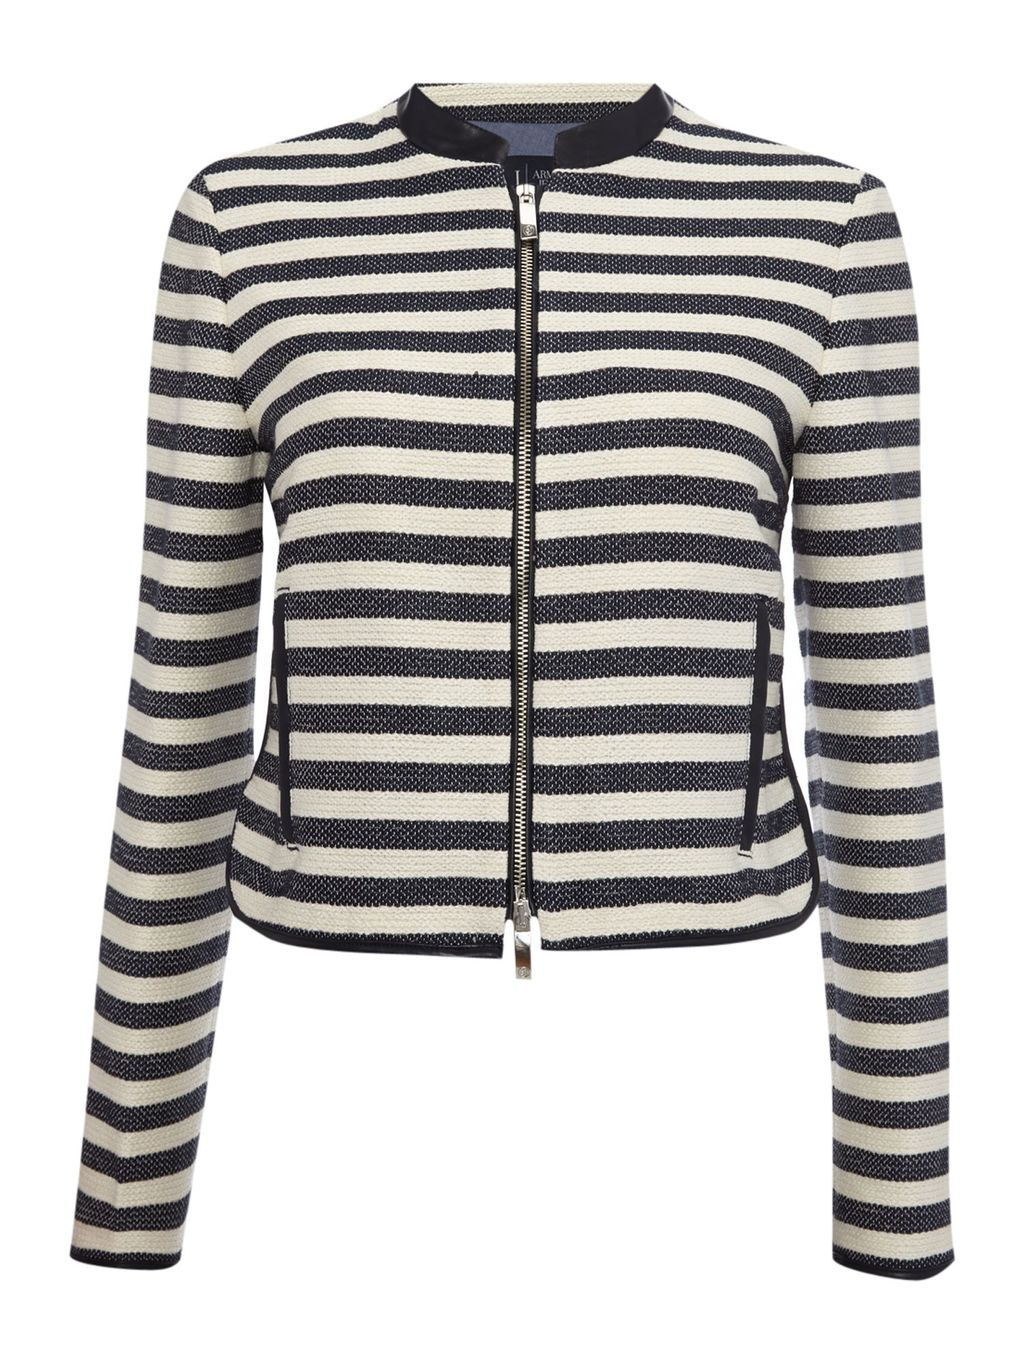 Stripe Jacket With Pu Trim, Navy & White - pattern: horizontal stripes; style: single breasted blazer; collar: round collar/collarless; secondary colour: white; predominant colour: black; occasions: evening, creative work; length: standard; fit: tailored/fitted; fibres: cotton - mix; sleeve length: long sleeve; sleeve style: standard; trends: monochrome; collar break: high; pattern type: fabric; texture group: woven light midweight; season: a/w 2015; wardrobe: investment